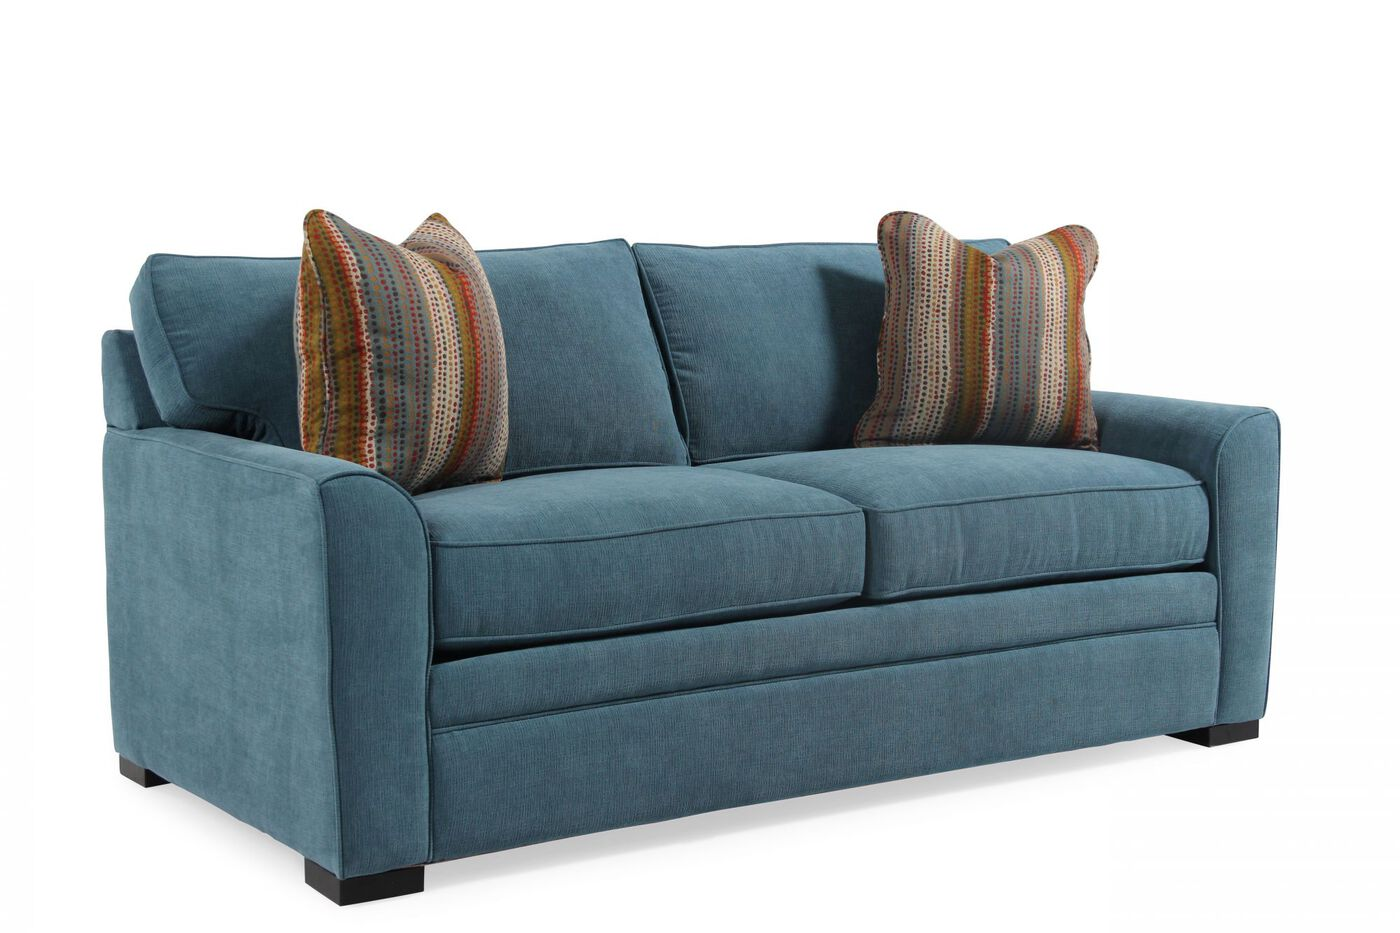 ele convertible bed sectional sleeper istikbal elegant htm by sofa p blue product